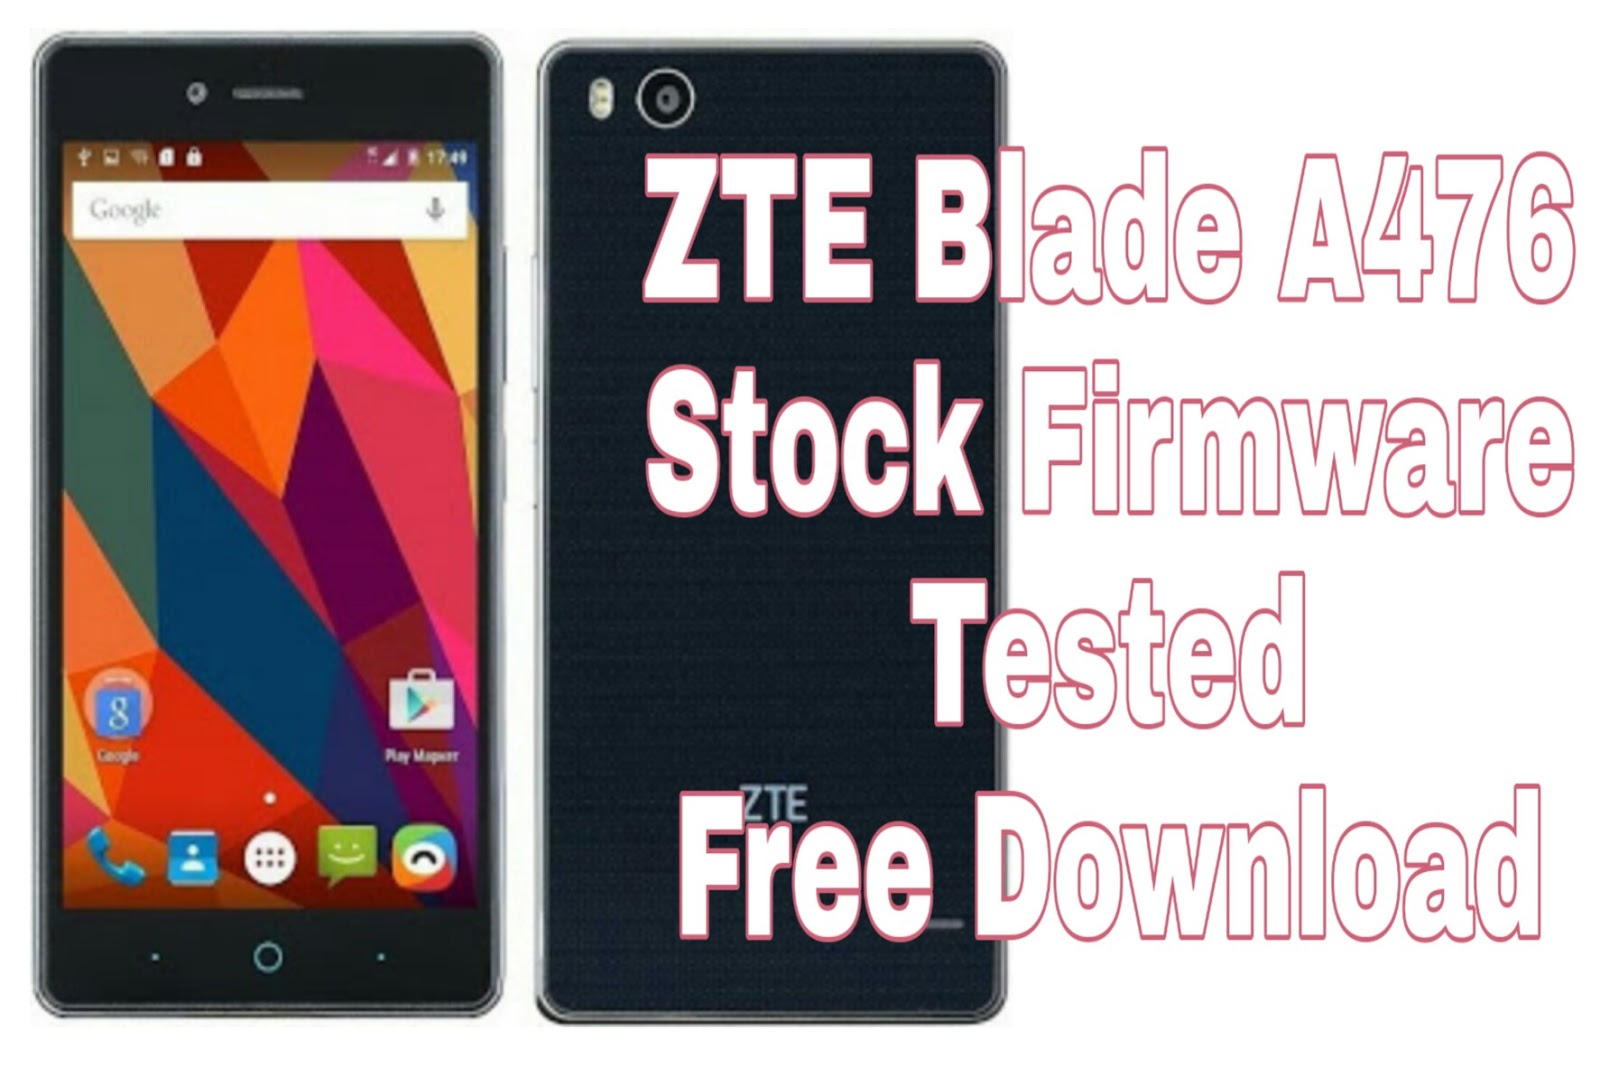 ZTE Blade A476 Firmware Tested Free Download - Download All Tested